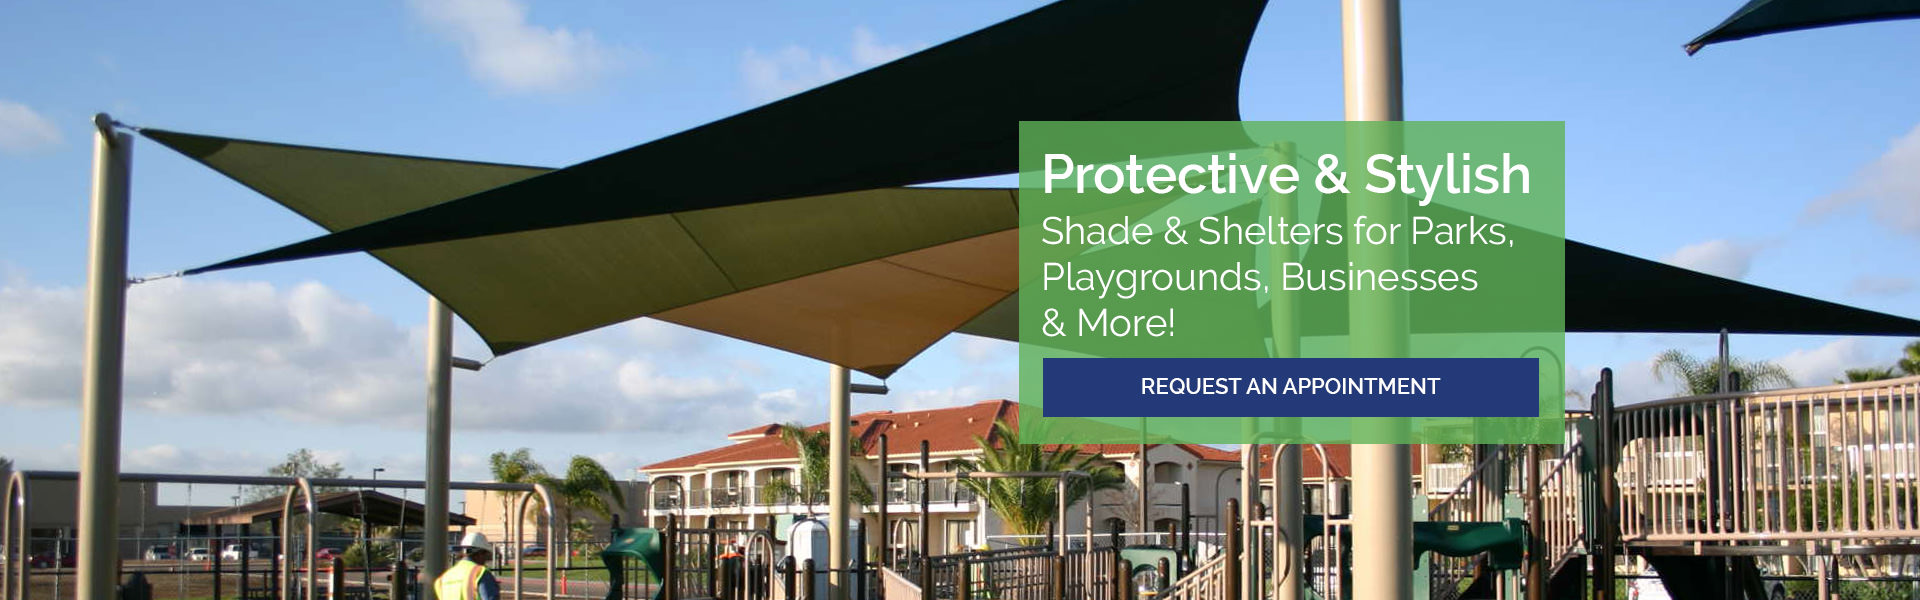 protevtive & stylish shades &shelters